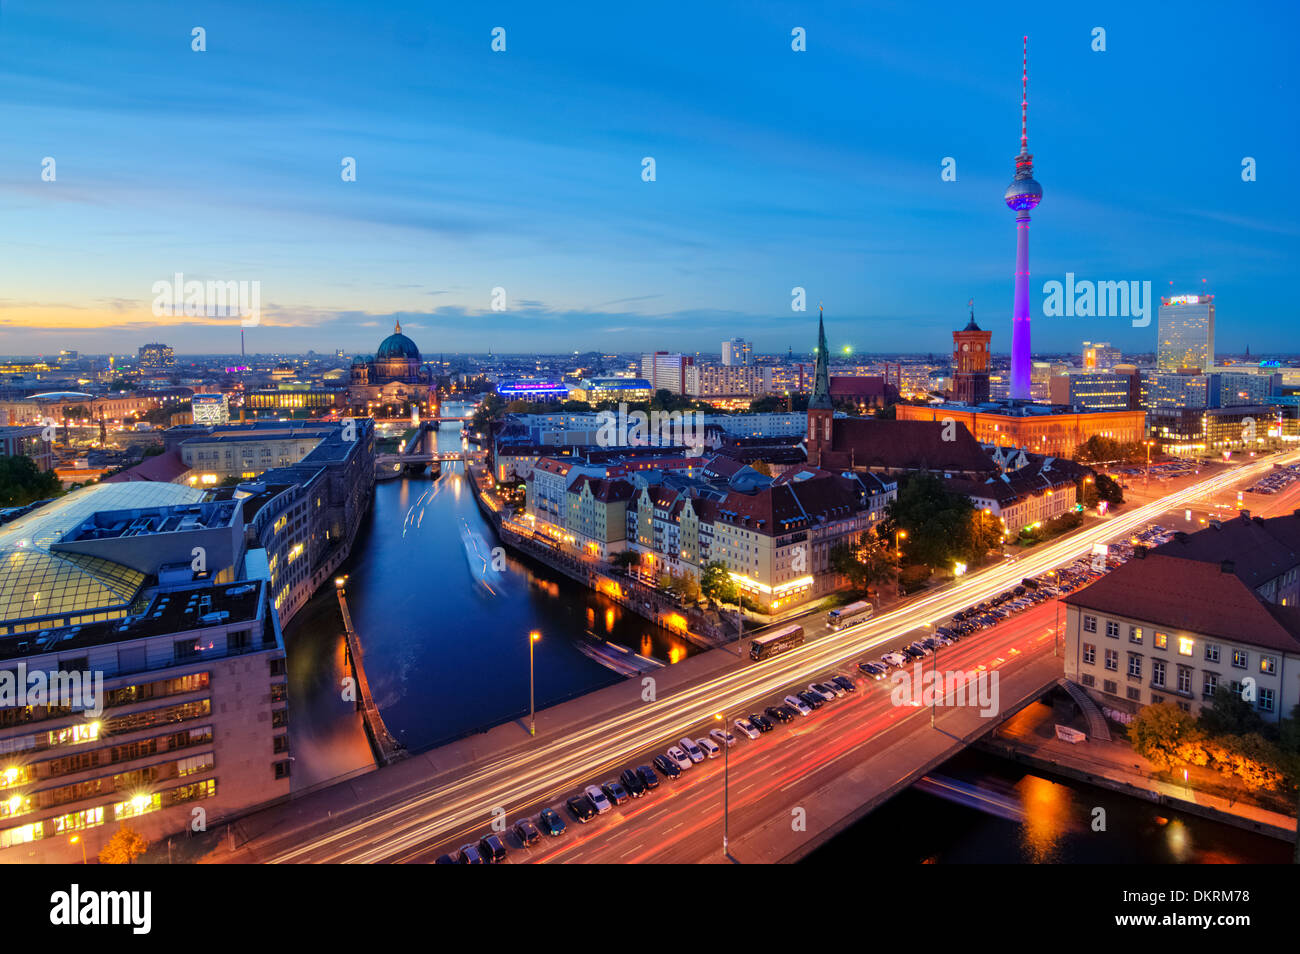 Skyline at Night, Fischerinsel, Berlin-Mitte, Berlin, Germany Stock Photo